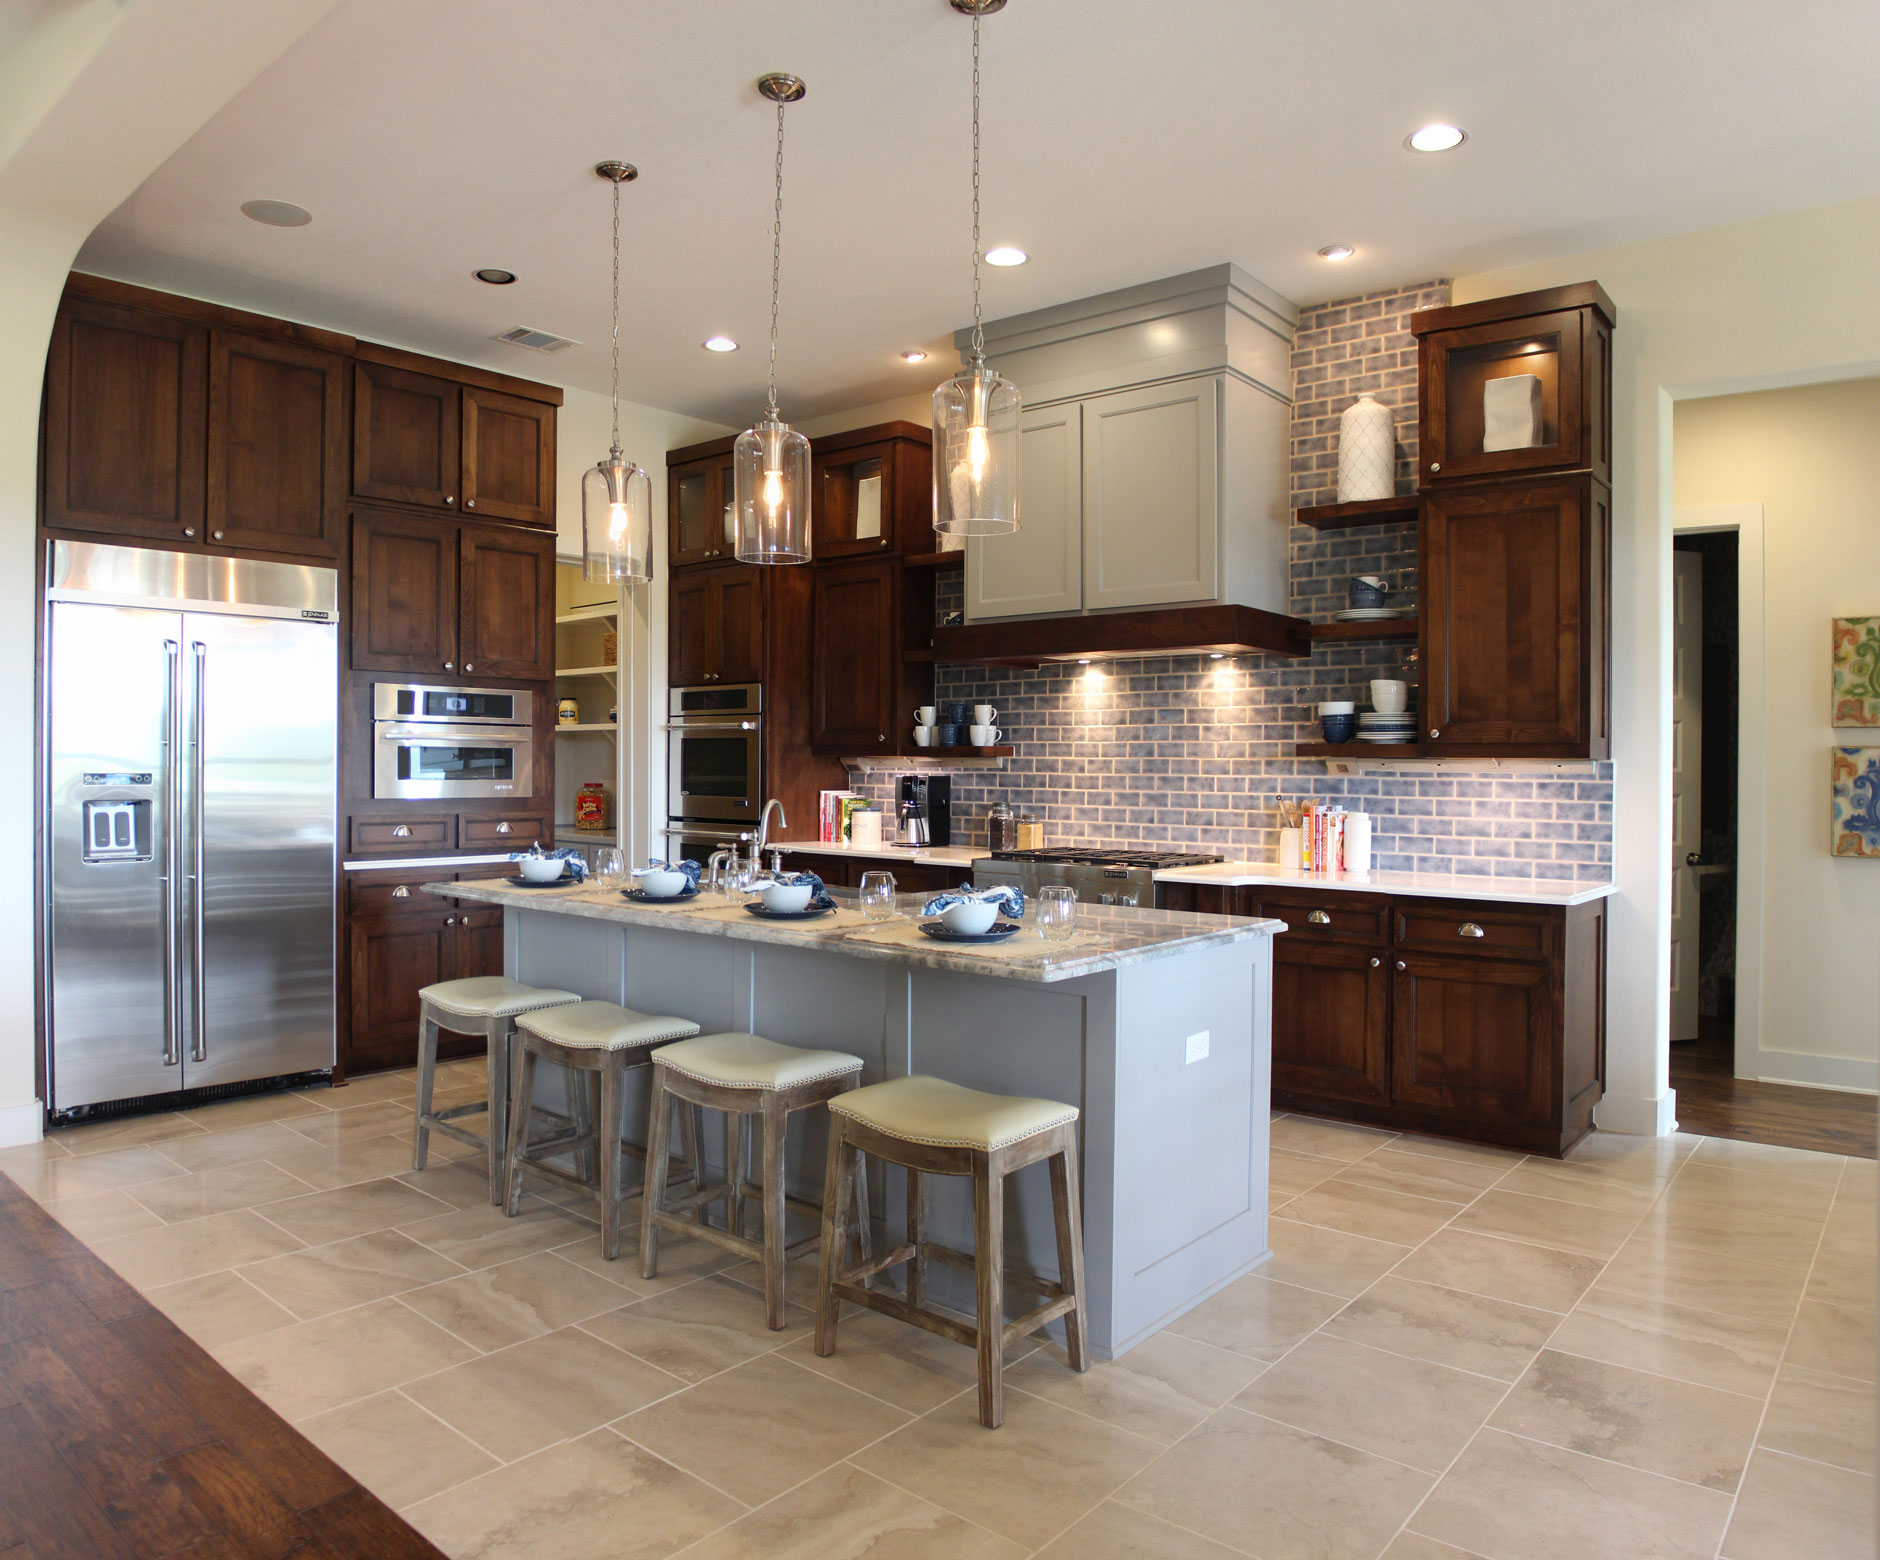 Kitchen Cabinets Red Oak Floors Choose Flooring That Complements Cabinet Color Burrows Cabinets